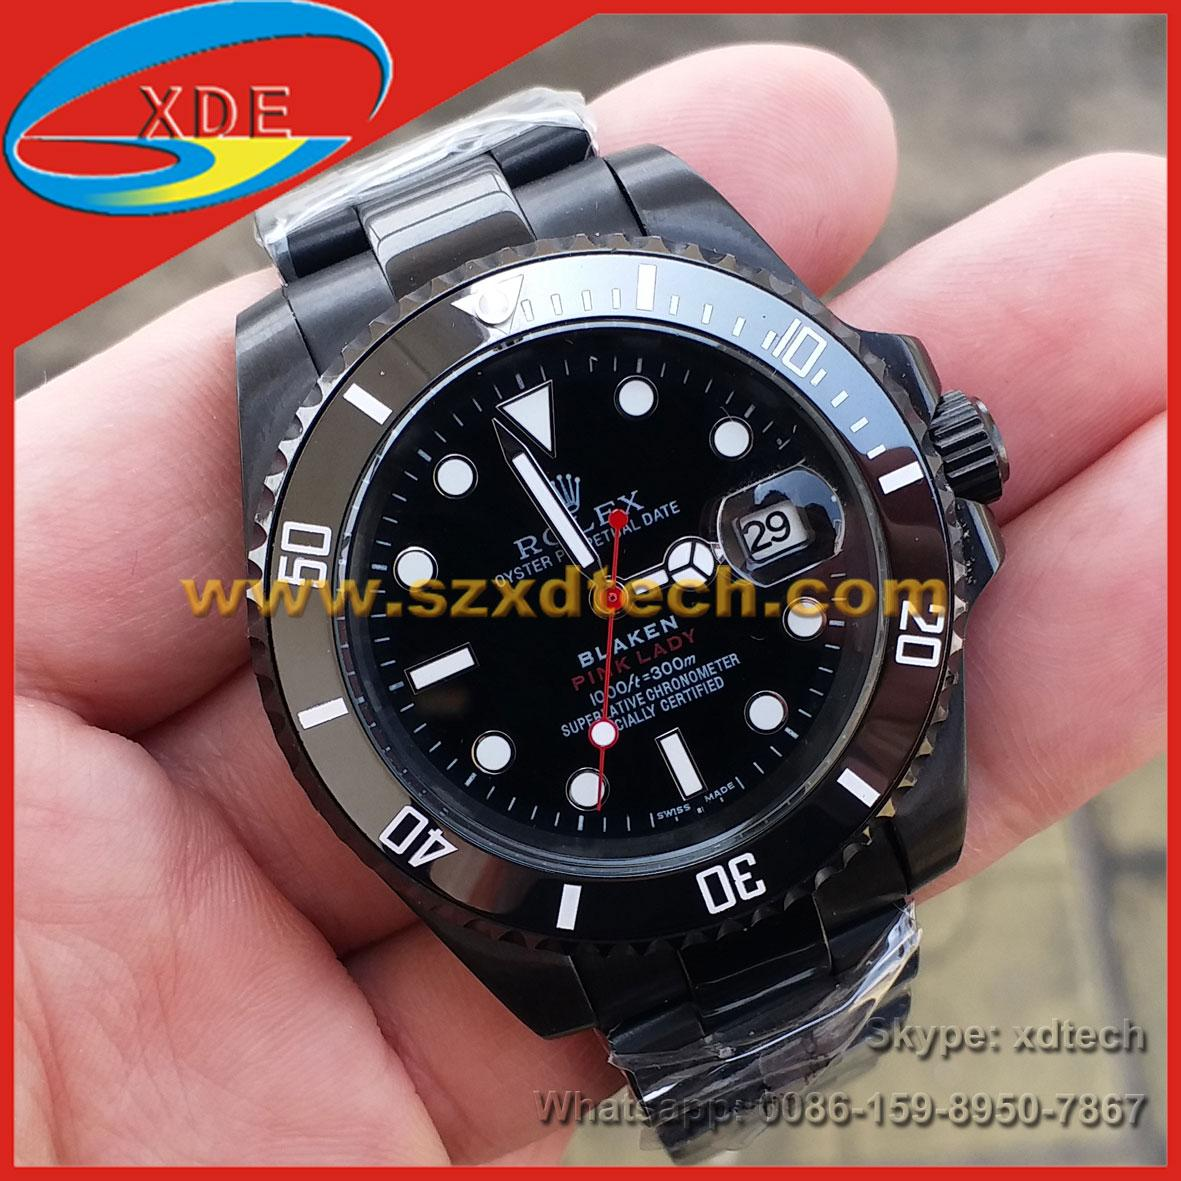 quotations cheap waterproof solid for alibaba cool so shopping black line large on com get sport men guides heavy at and watches find deals size